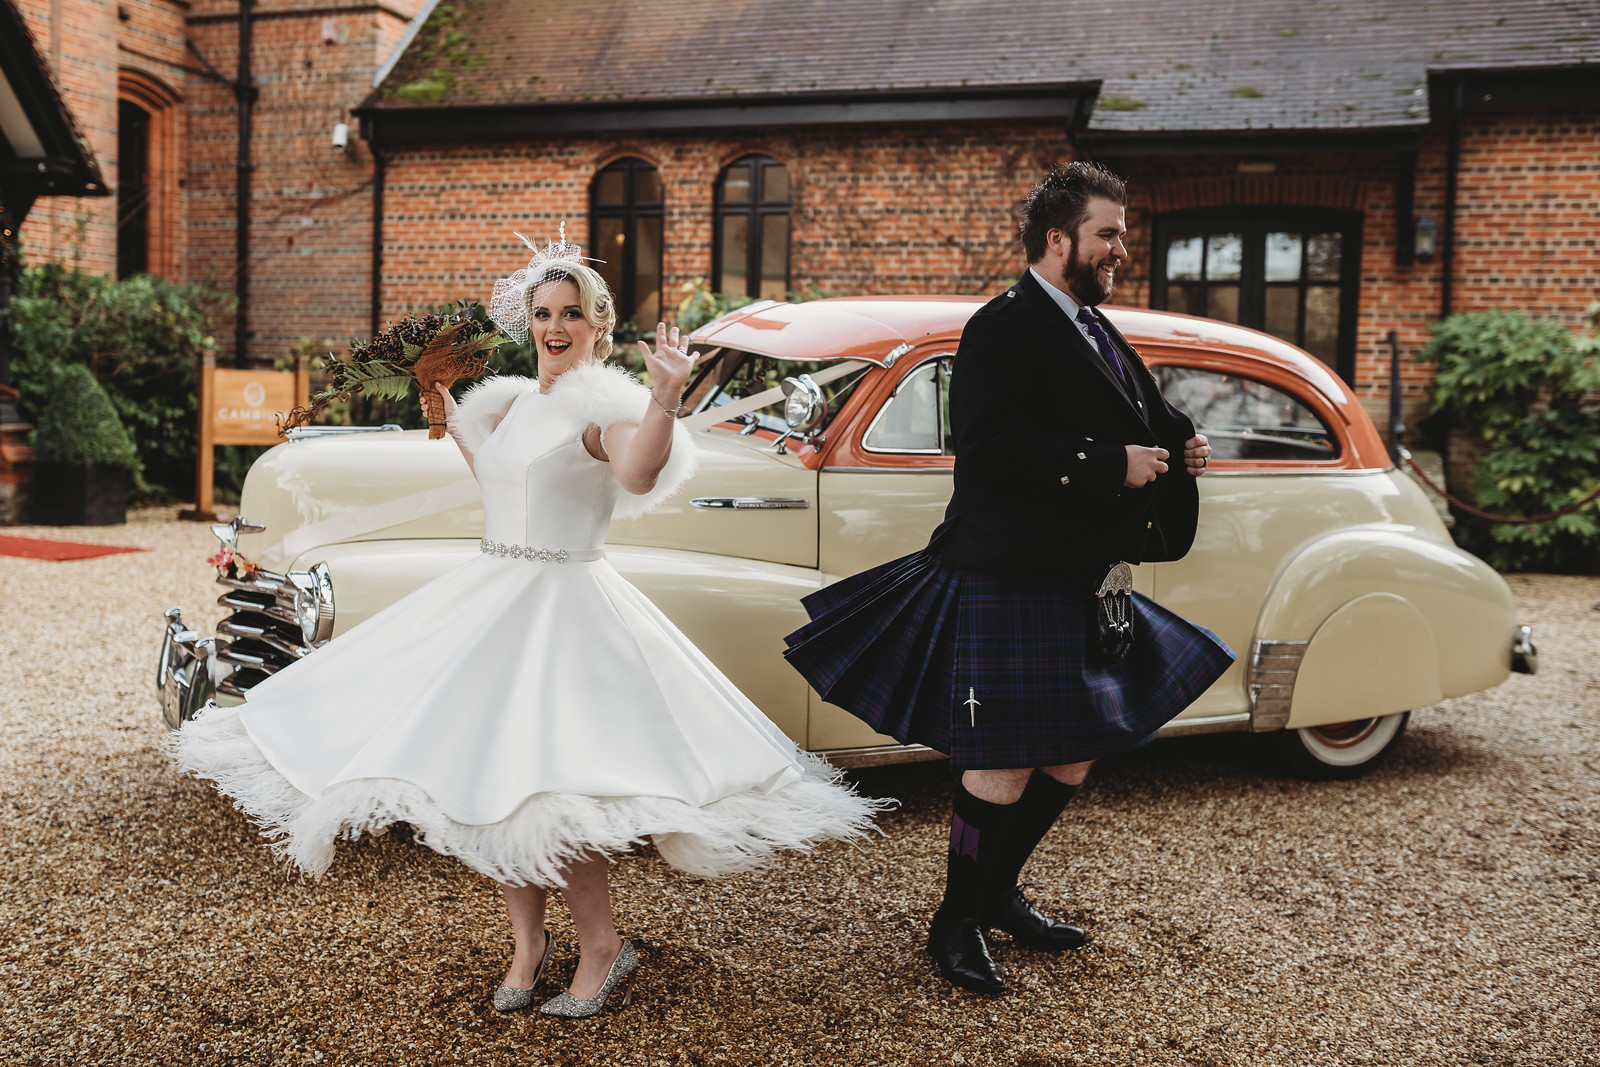 Bride and groom dance in front of the venue - Fun wedding photo